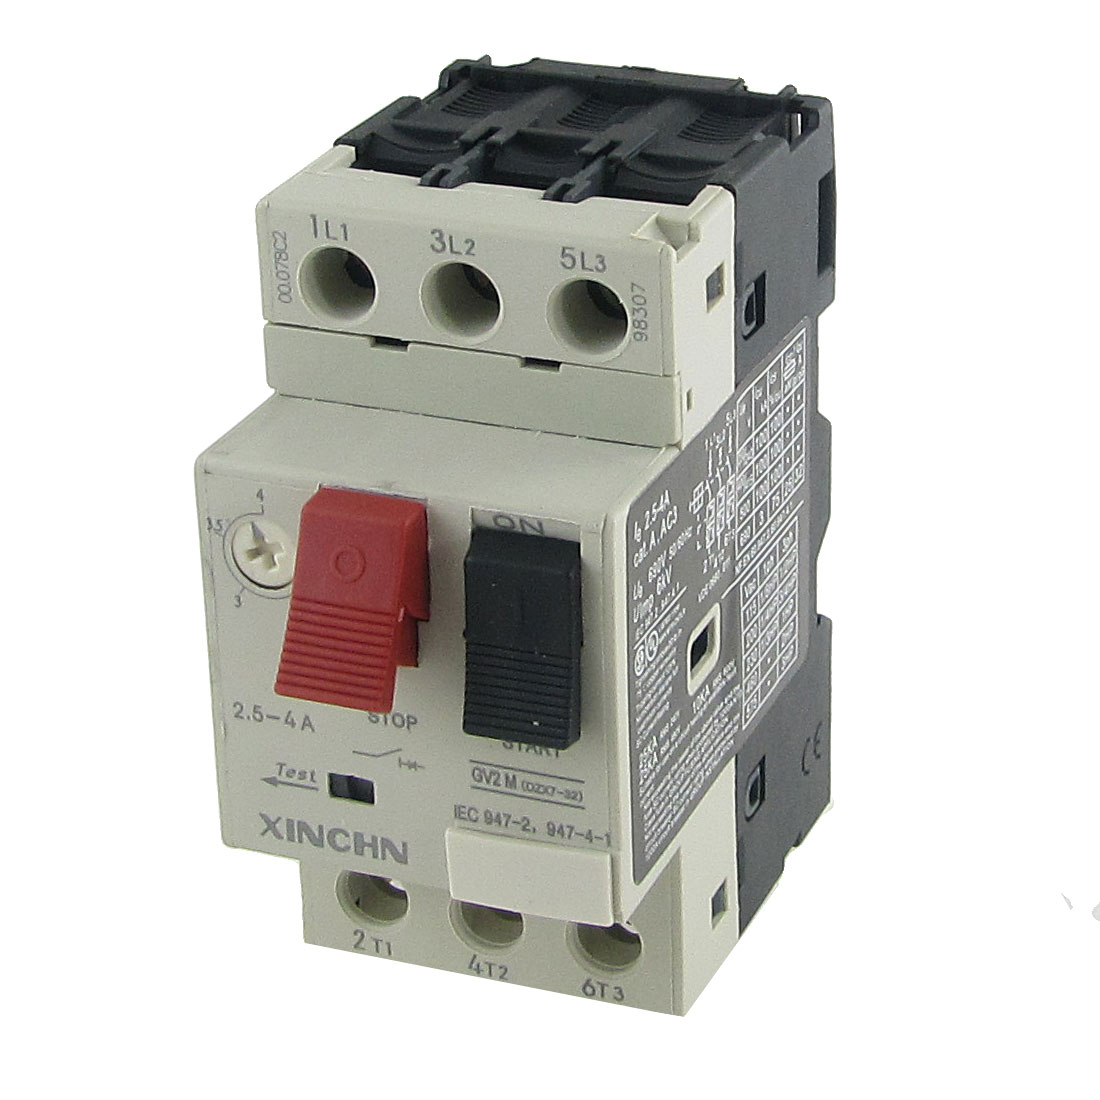 690V 2.5-4A Thermal Motor Protector Circuit Breaker 3 Pole